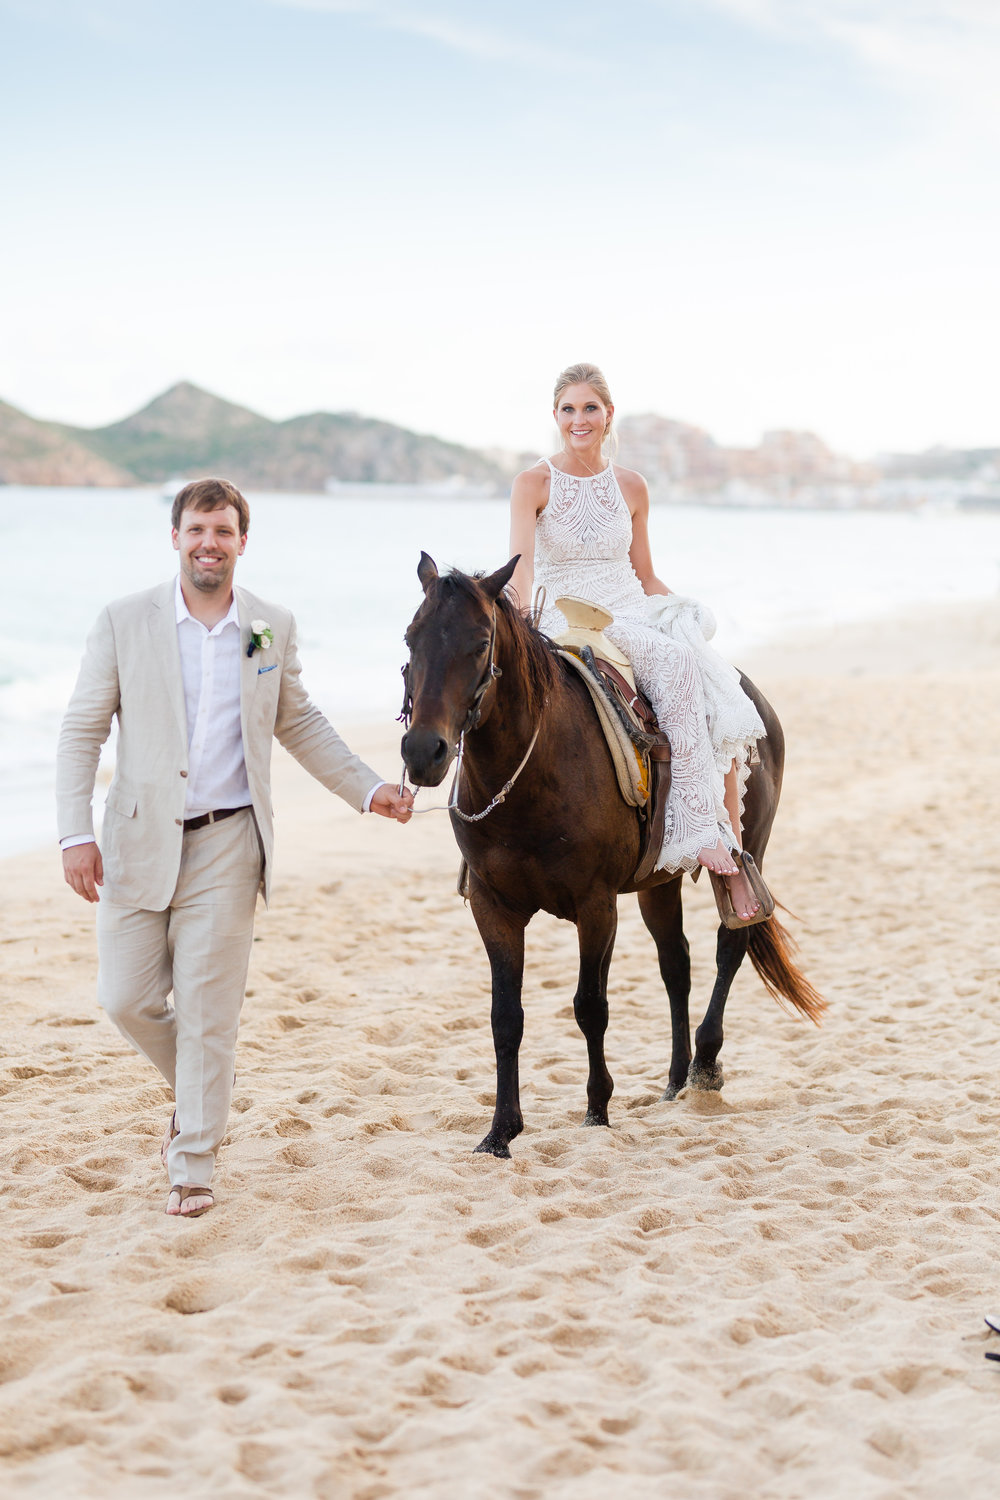 Meet Ashley - There are four things I love in life; my husband, photography, traveling, and horses. If I can incorporate all four, my heart is full.My couples are adventurous and full of love and passion. I strive to document their unique love story and create memories that will last a life time.